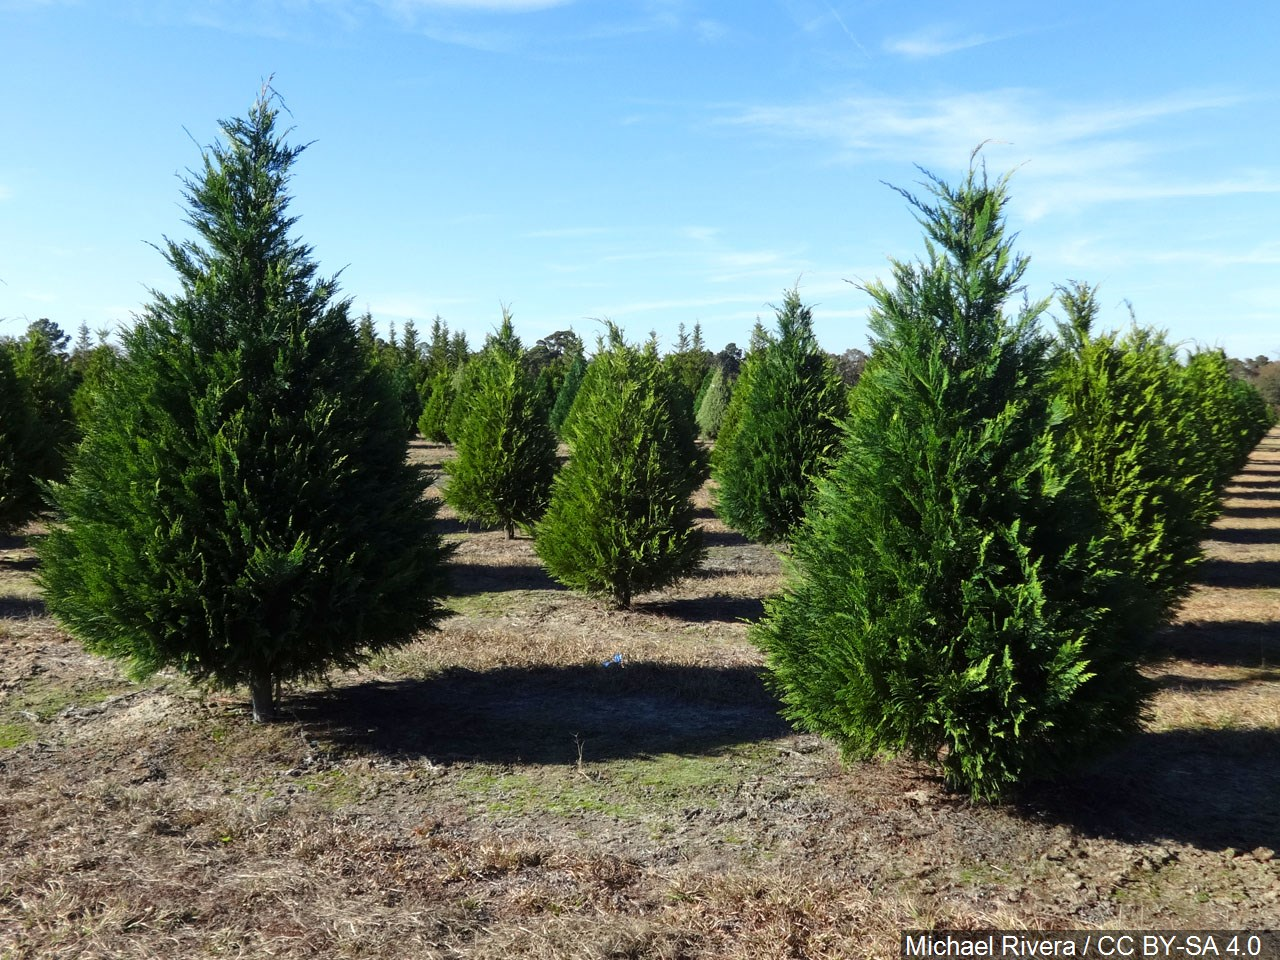 Roads and highways will have its share of families heading to pick out a tree for Christmas.